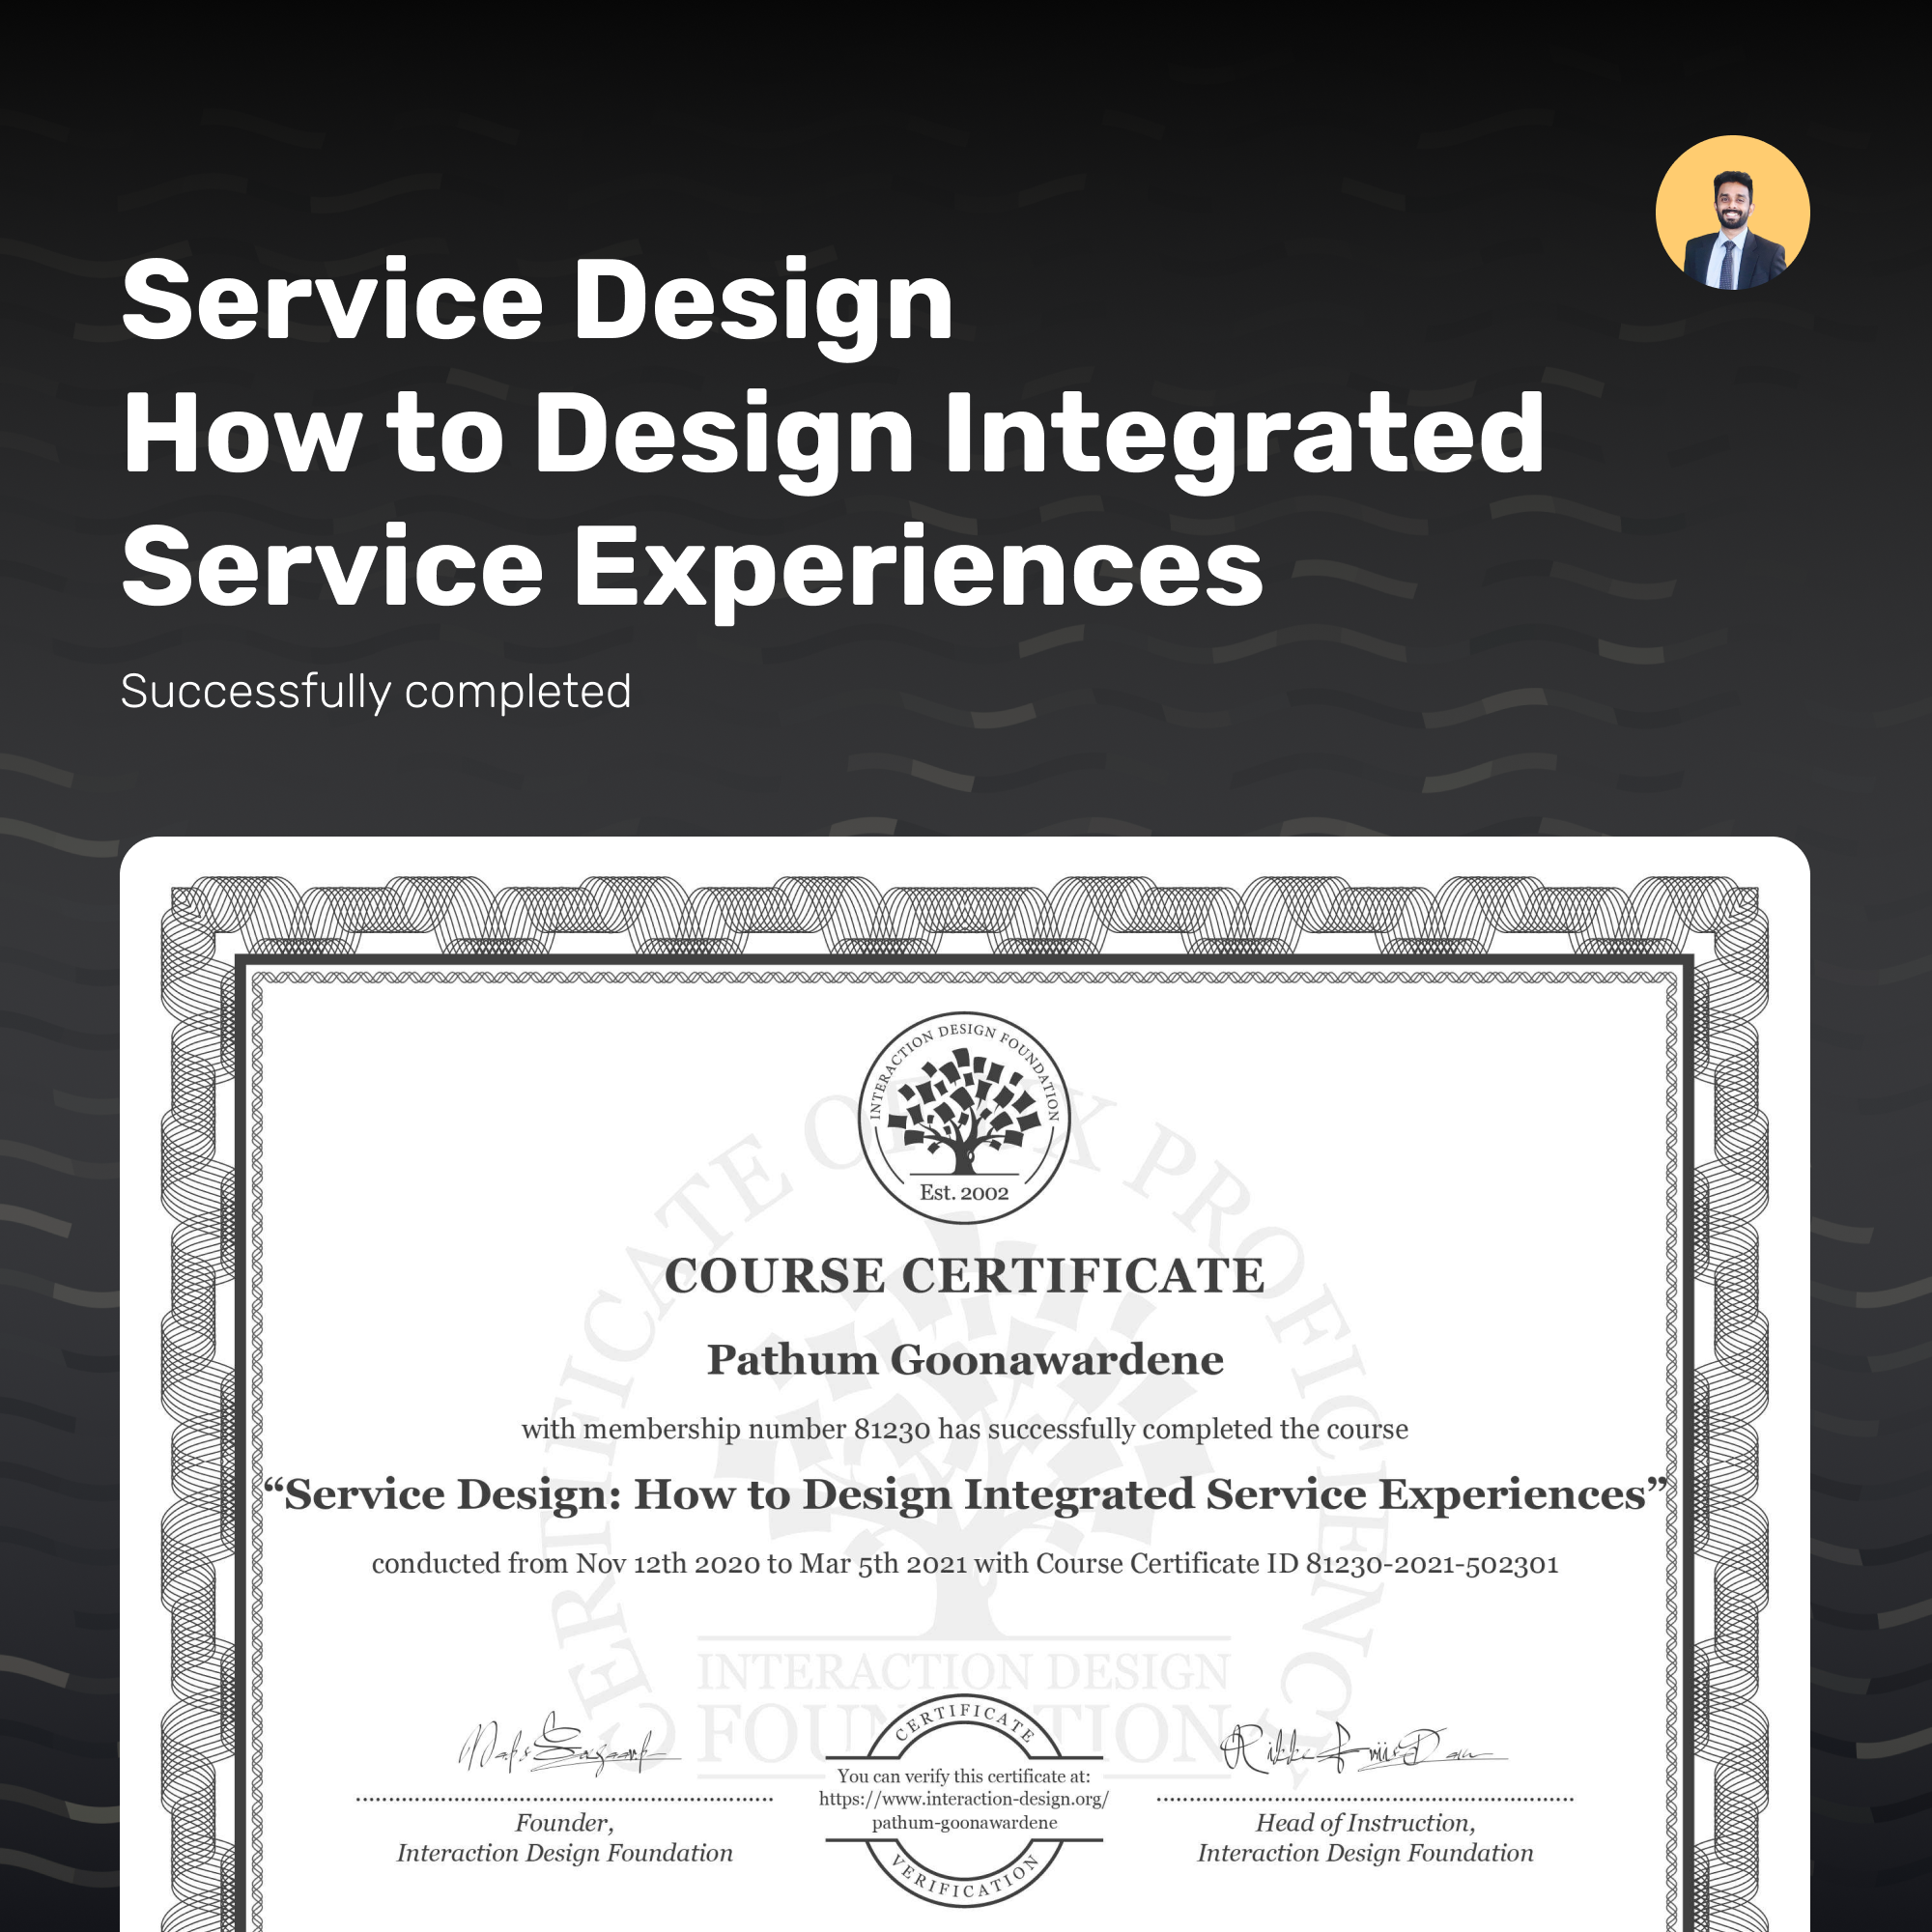 Service Design: How to Design Integrated Service Experiences